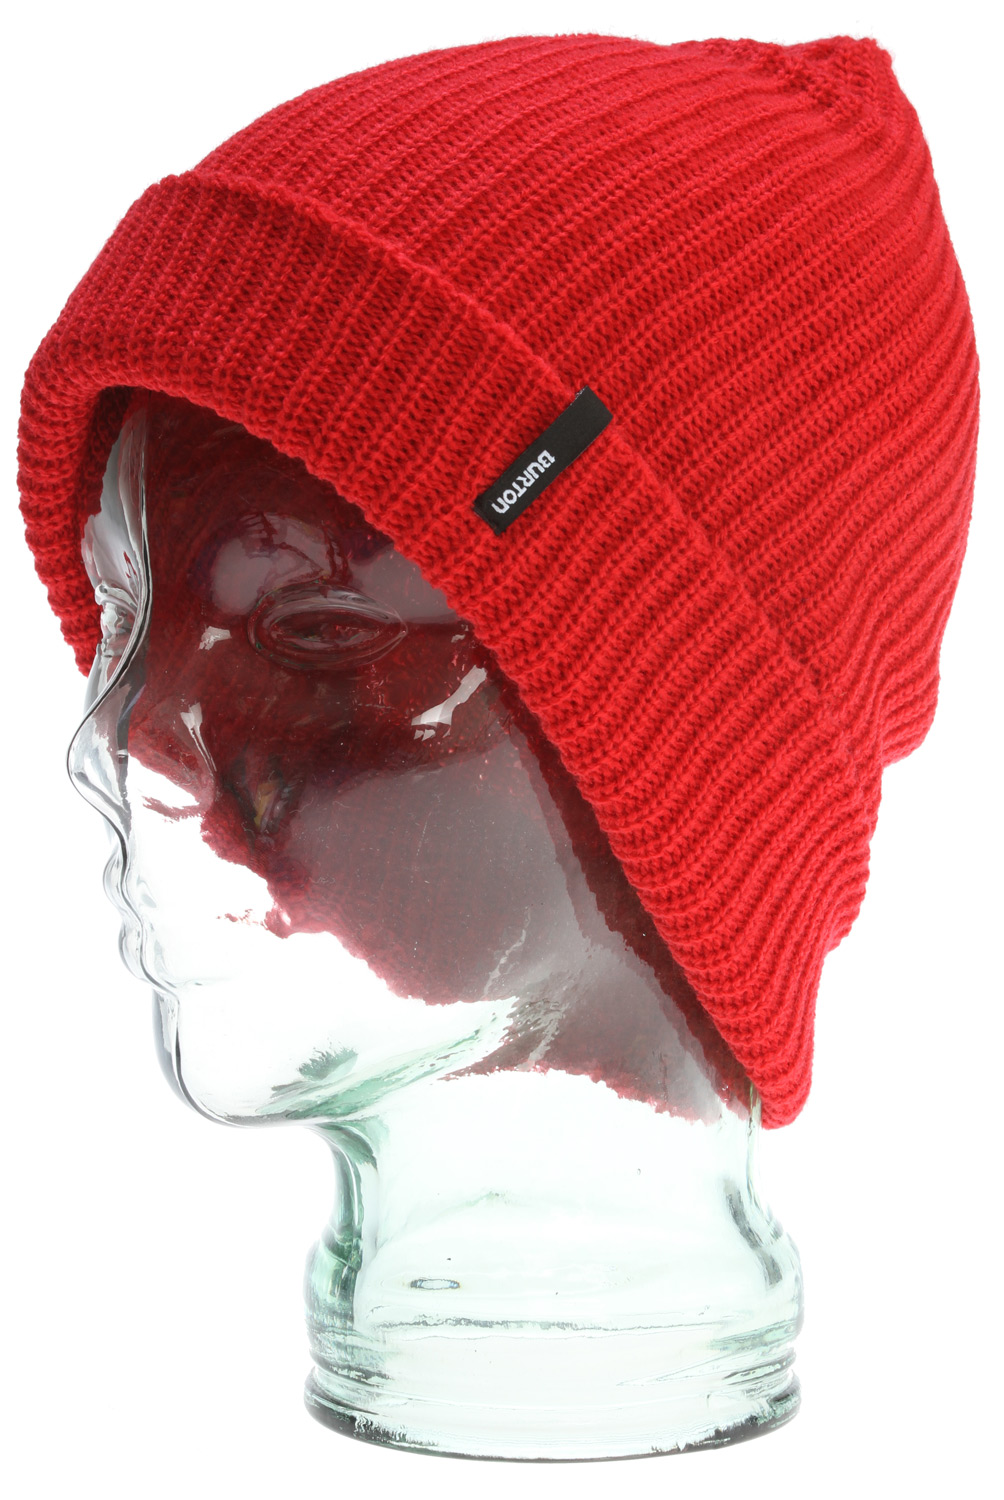 Snowboard Key Features of the Burton Truckstop 3 Pack Beanies: 100% Acrylic Basic Solid Knit Beanie Fold Up with Super Slouch Fit - $35.00